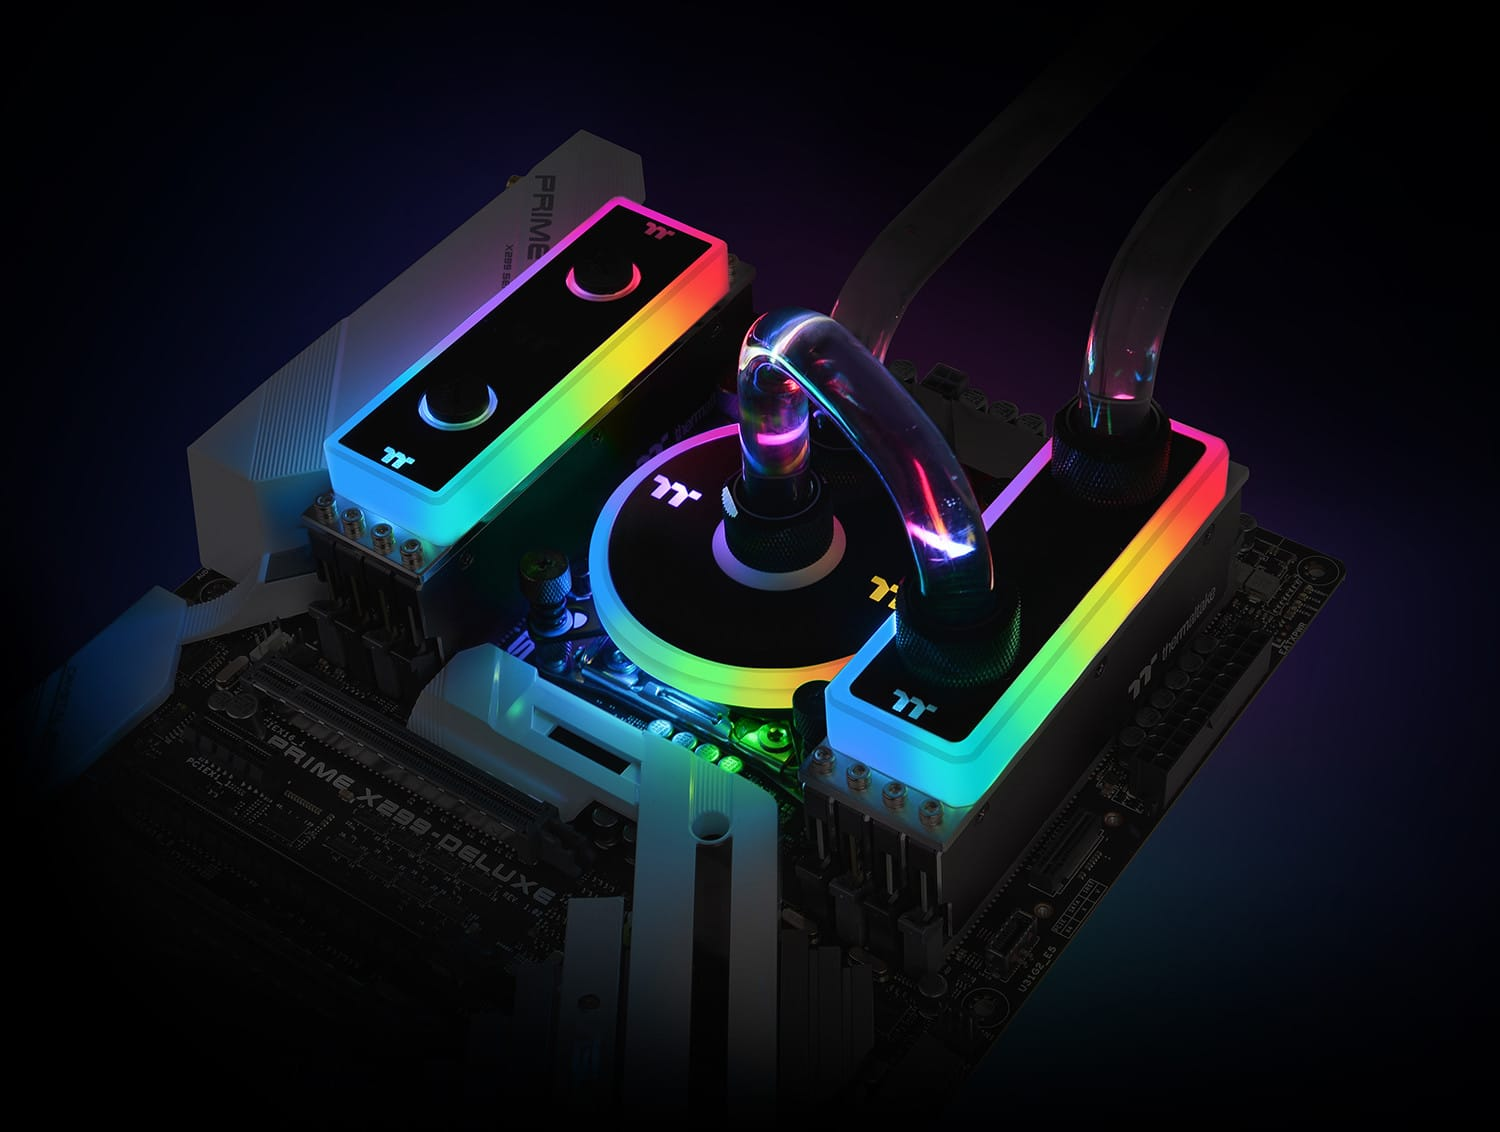 thermaltake RAM WaterRam RGB DDR4